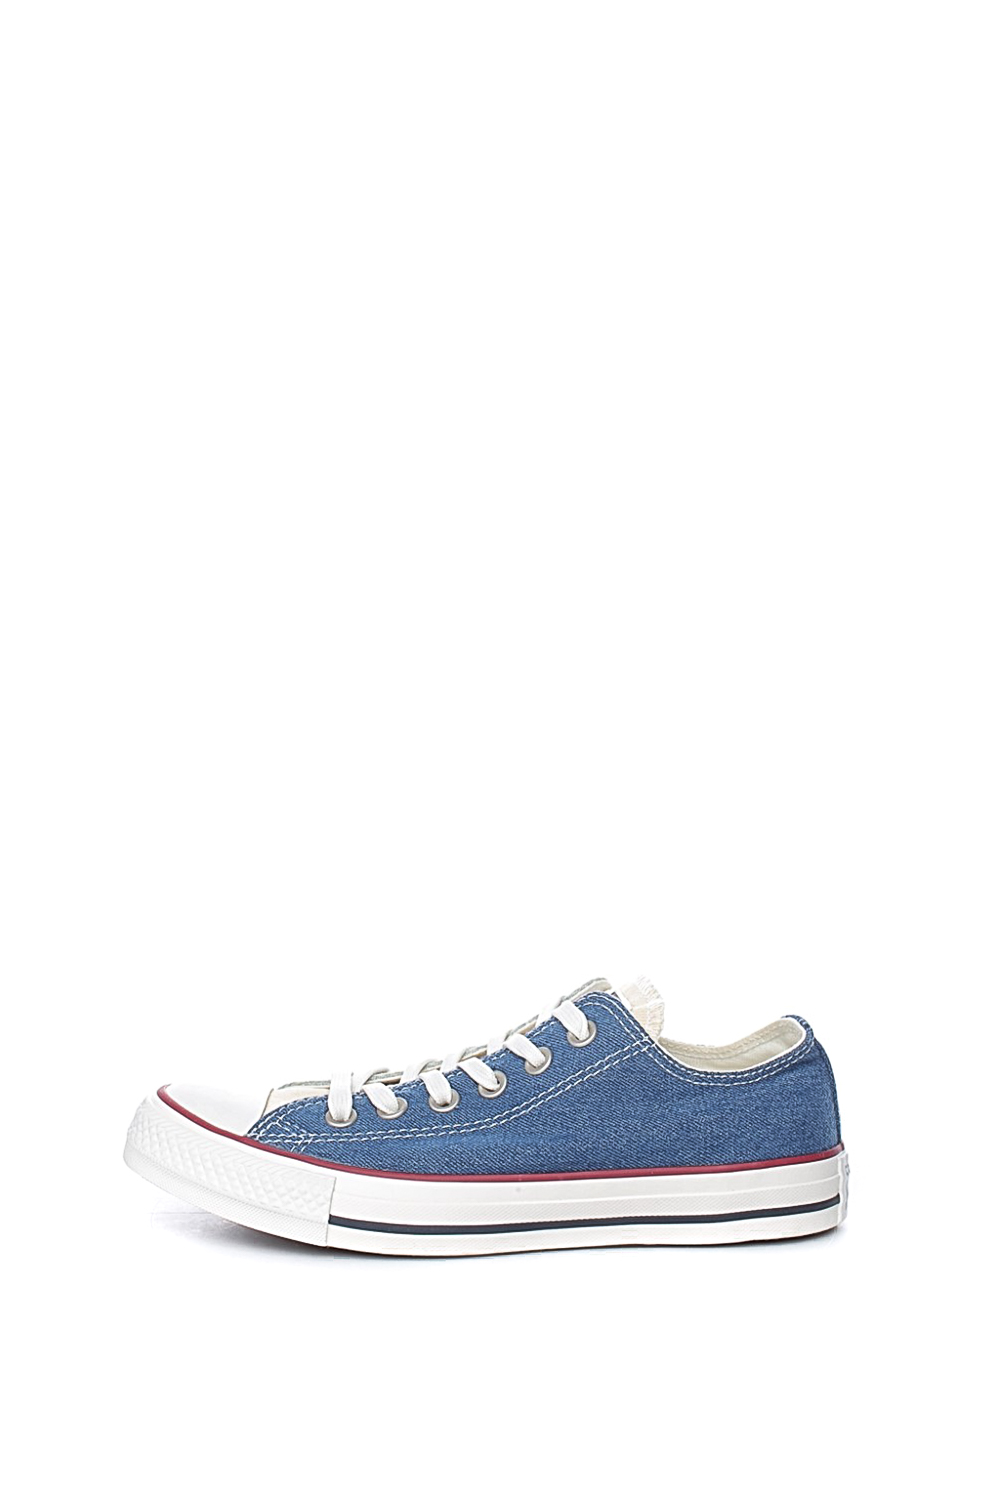 a5f82b3e5926 -20% Collective Online CONVERSE – Unisex sneakers CONVERSE CHUCK TAYLOR ALL  STAR OX μπλε-λευκά